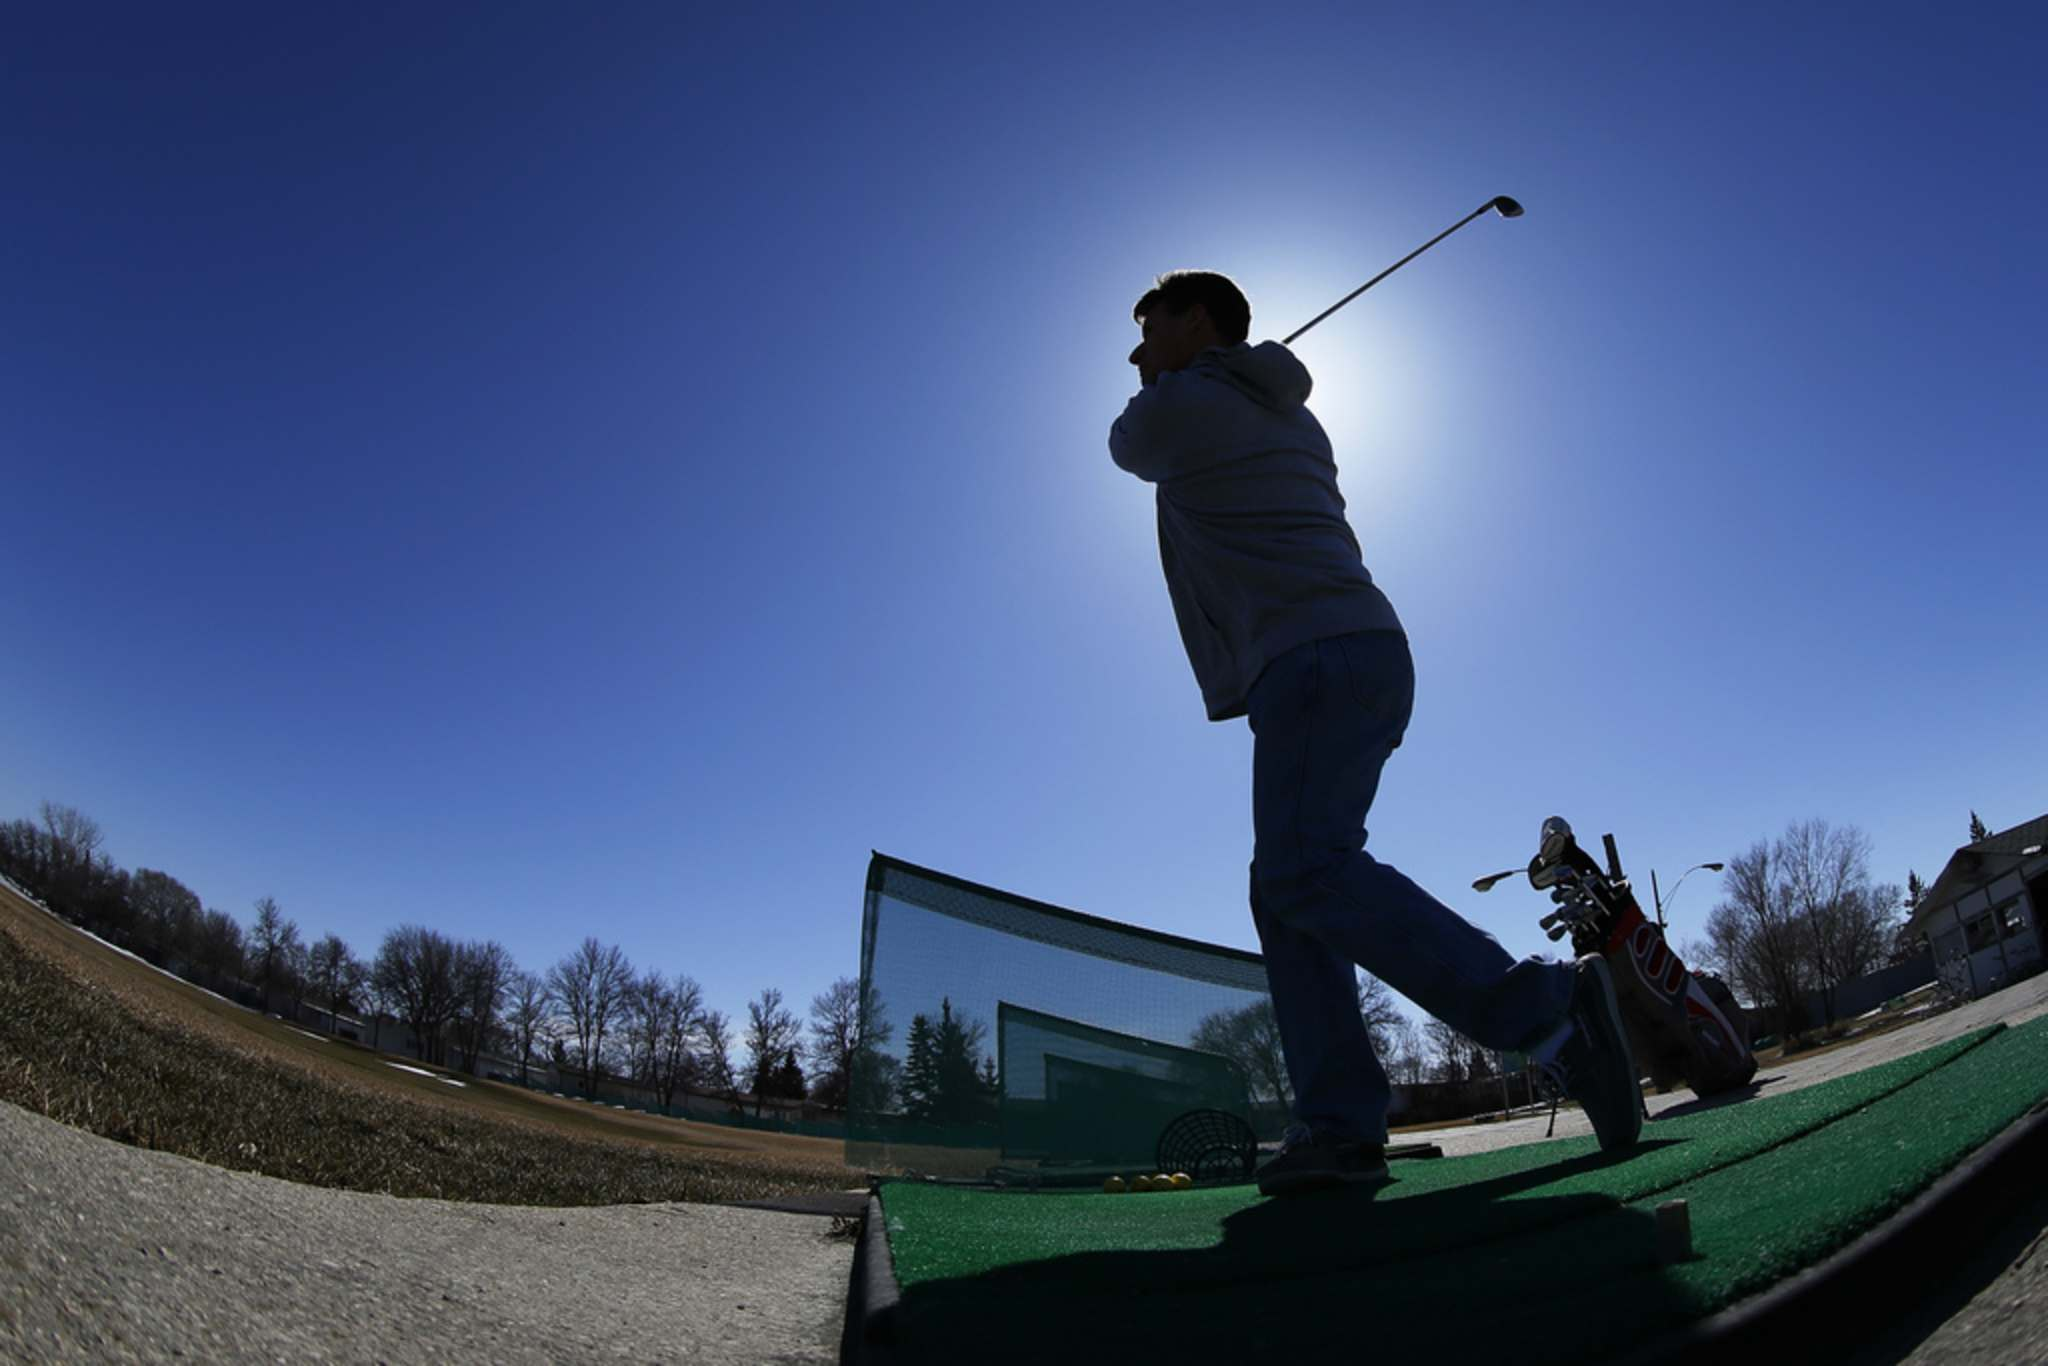 JOHN WOODS / WINNIPEG FREE PRESS FILES</p><p>A golfer hits some balls on the opening day of golf season in 2018. There are some Manitoba golf course officials who don't think COVID-19 should put a halt to the golf season.</p>